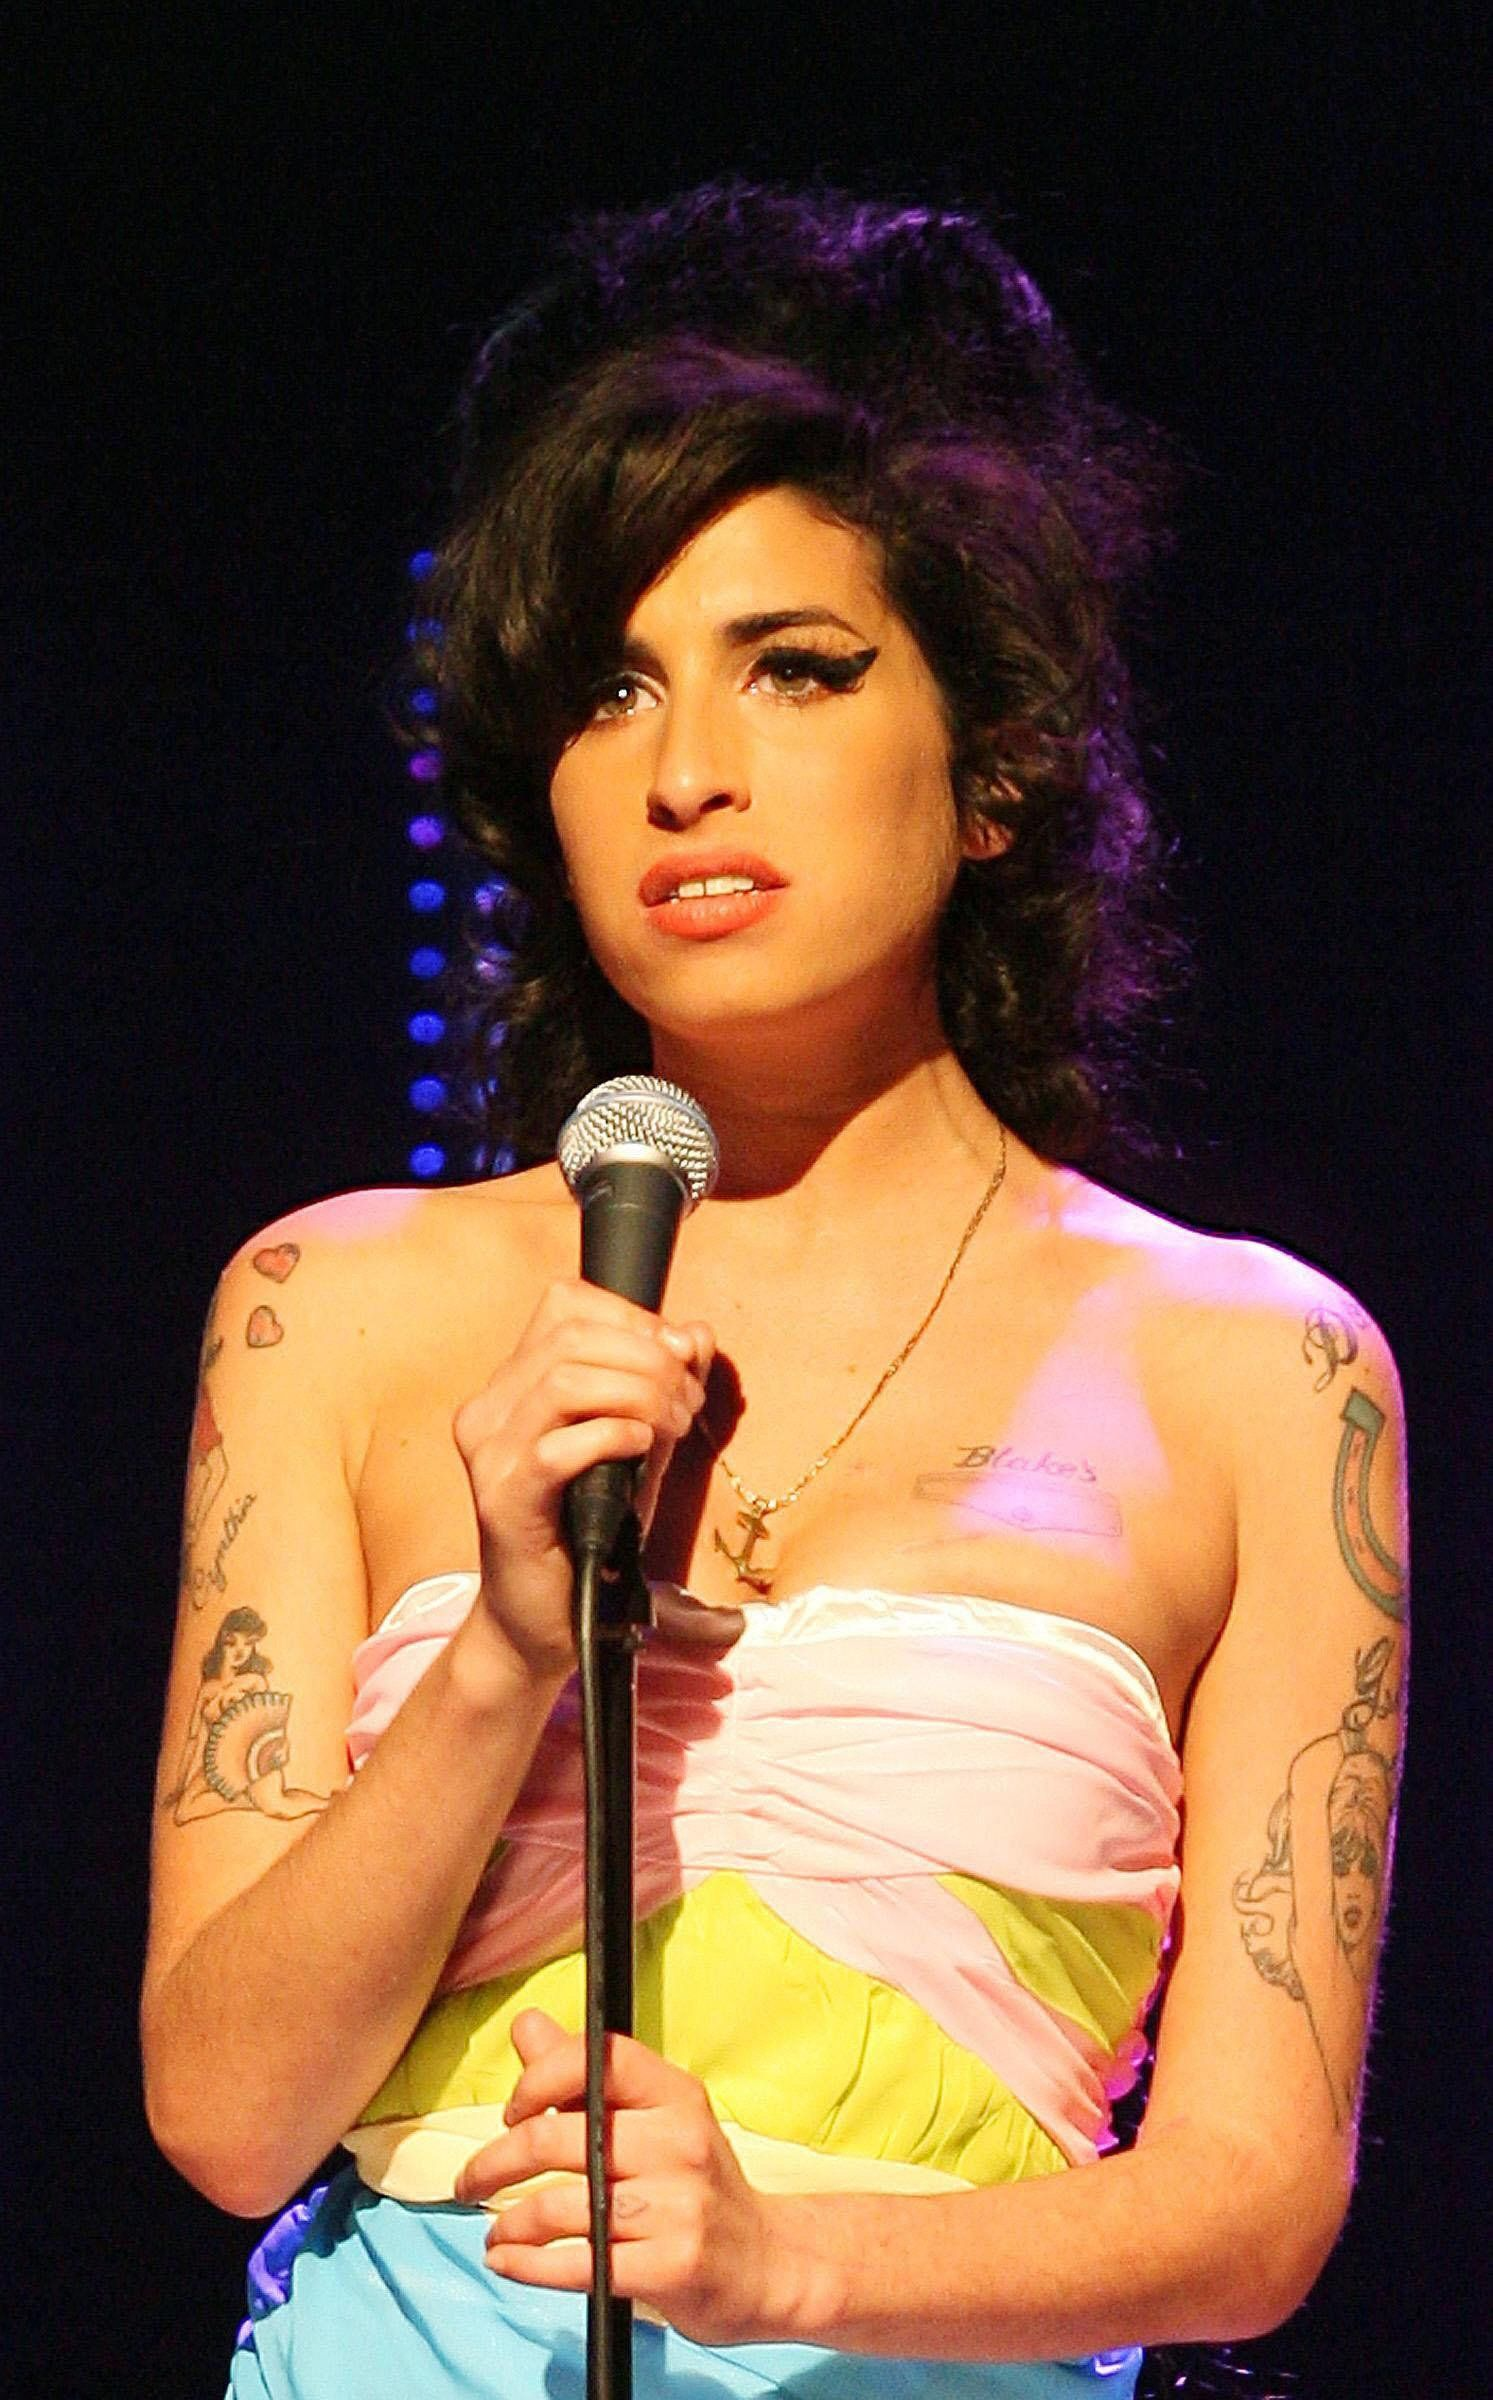 Unheard Demo Amy Winehouse Recorded At The Age Of 17 Is Released